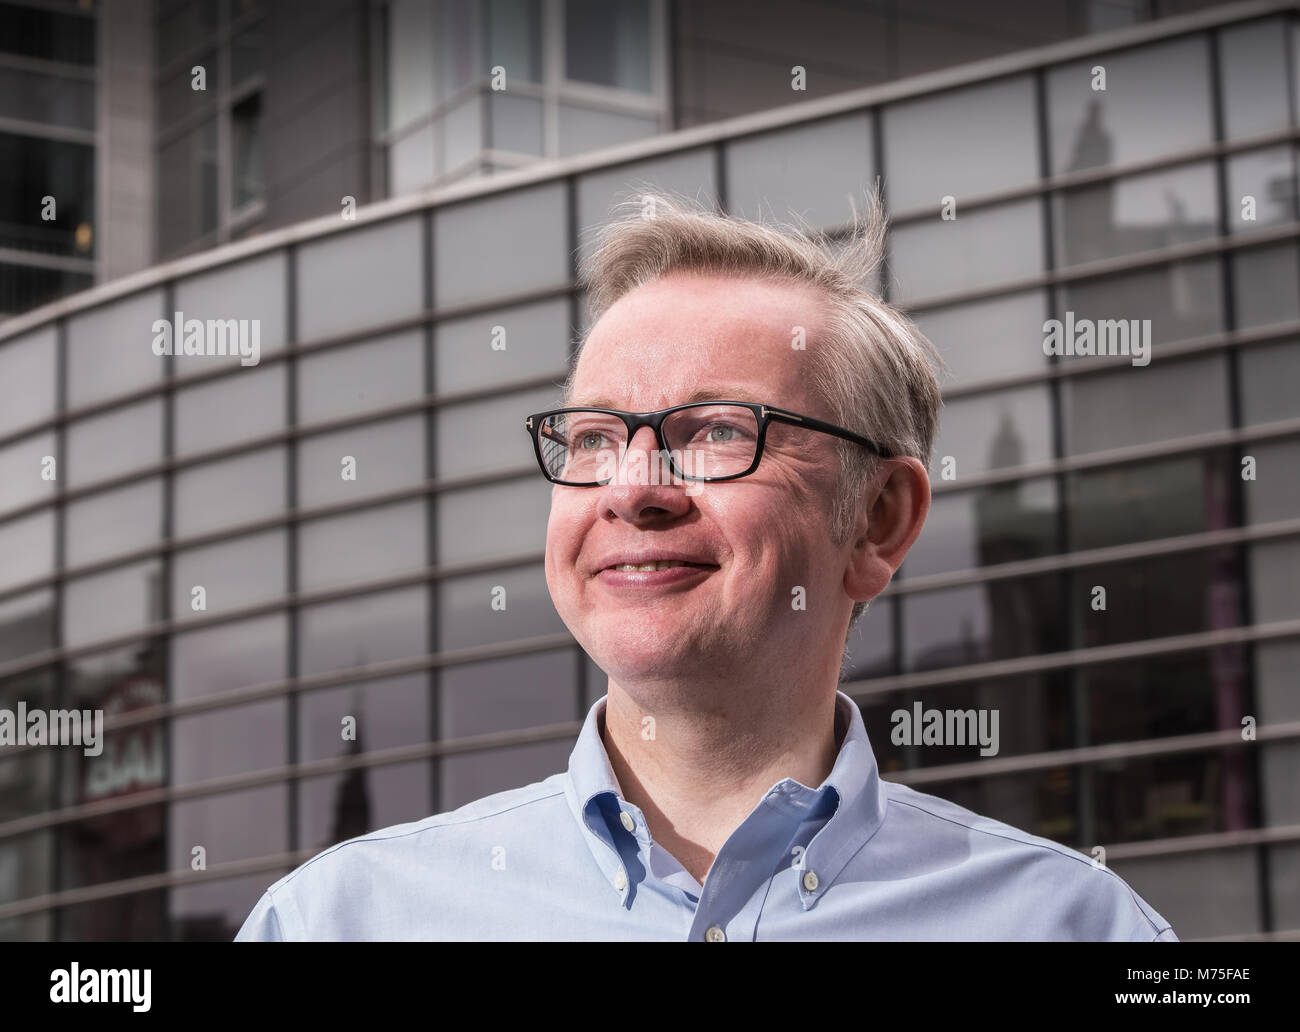 British Conservative Party Member of Parliament Michael Gove looking relaxed and wearing glasses - Stock Image